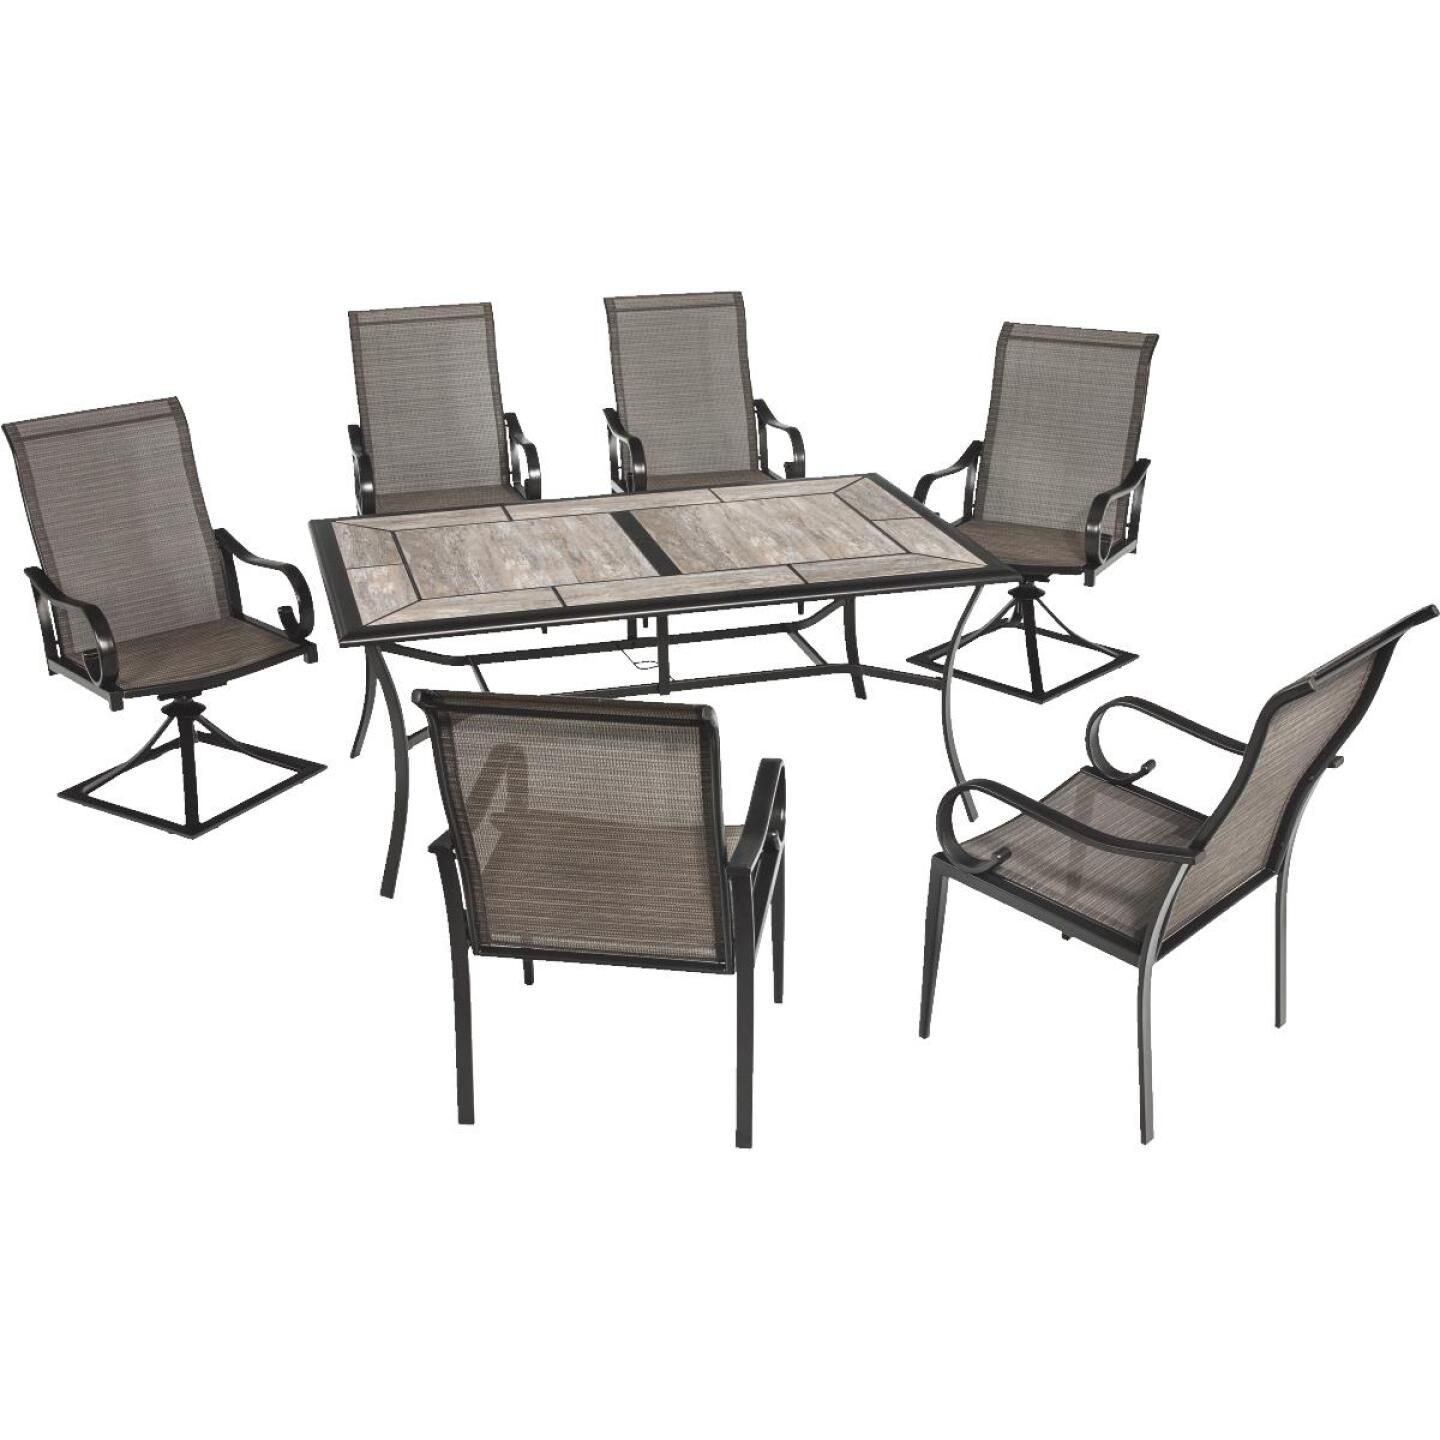 Outdoor Expressions Berkshire 7-Piece Dining Set Image 41